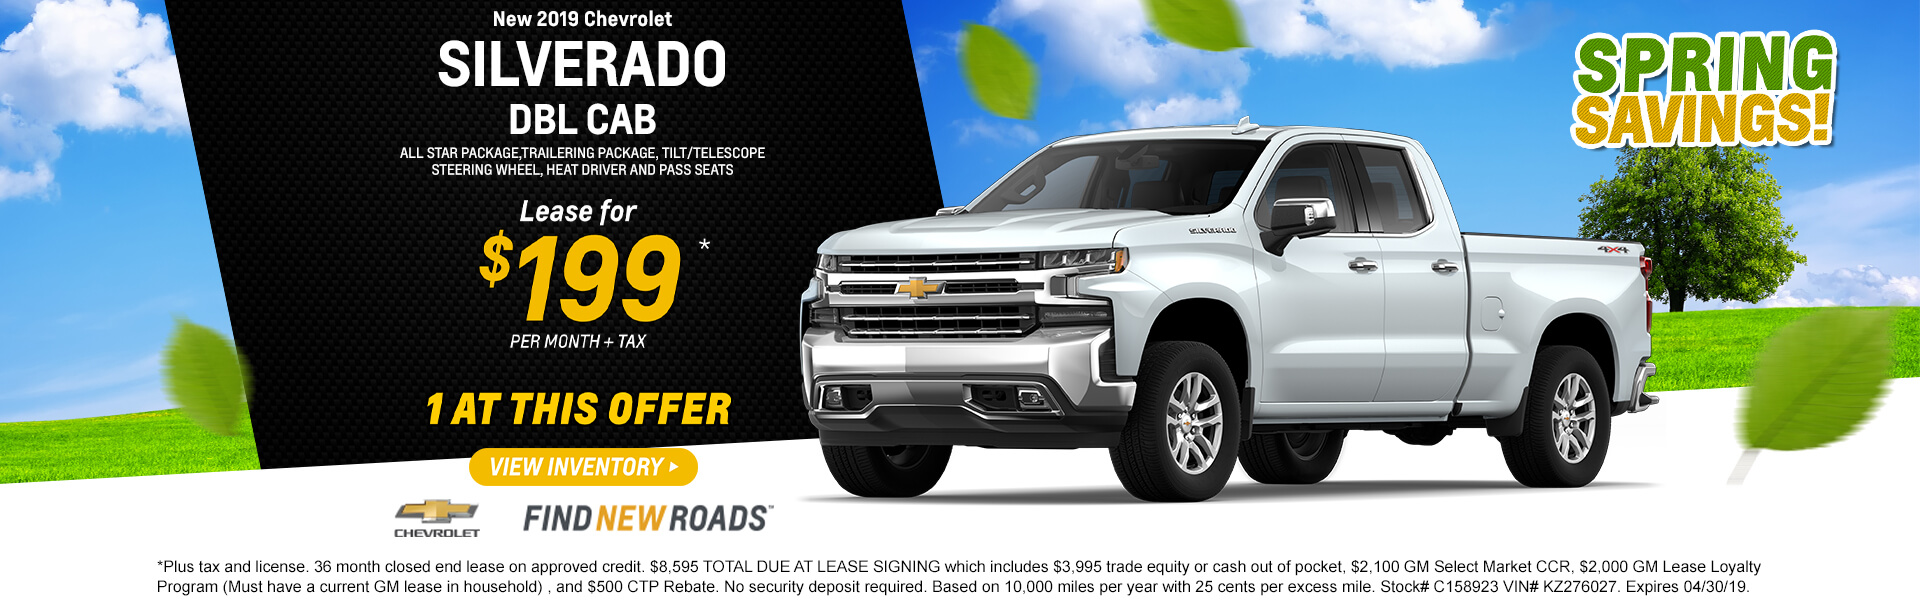 2019 Silverado Double Cab Lease $199 per month $8,595 TOTAL DUE AT LEASE SIGNING which includes $3,995 trade equity or cash out of pocket, $2,100 GM Select Market CCR, $2,000 GM Lease Loyalty Program (Must have a current GM lease in household) , and $500 CTP Rebate. No security deposit required. Based on 10,000 miles per year with 25 cents per excess mile. Stock# C158923 VIN# KZ276027. Expires 04/30/19.